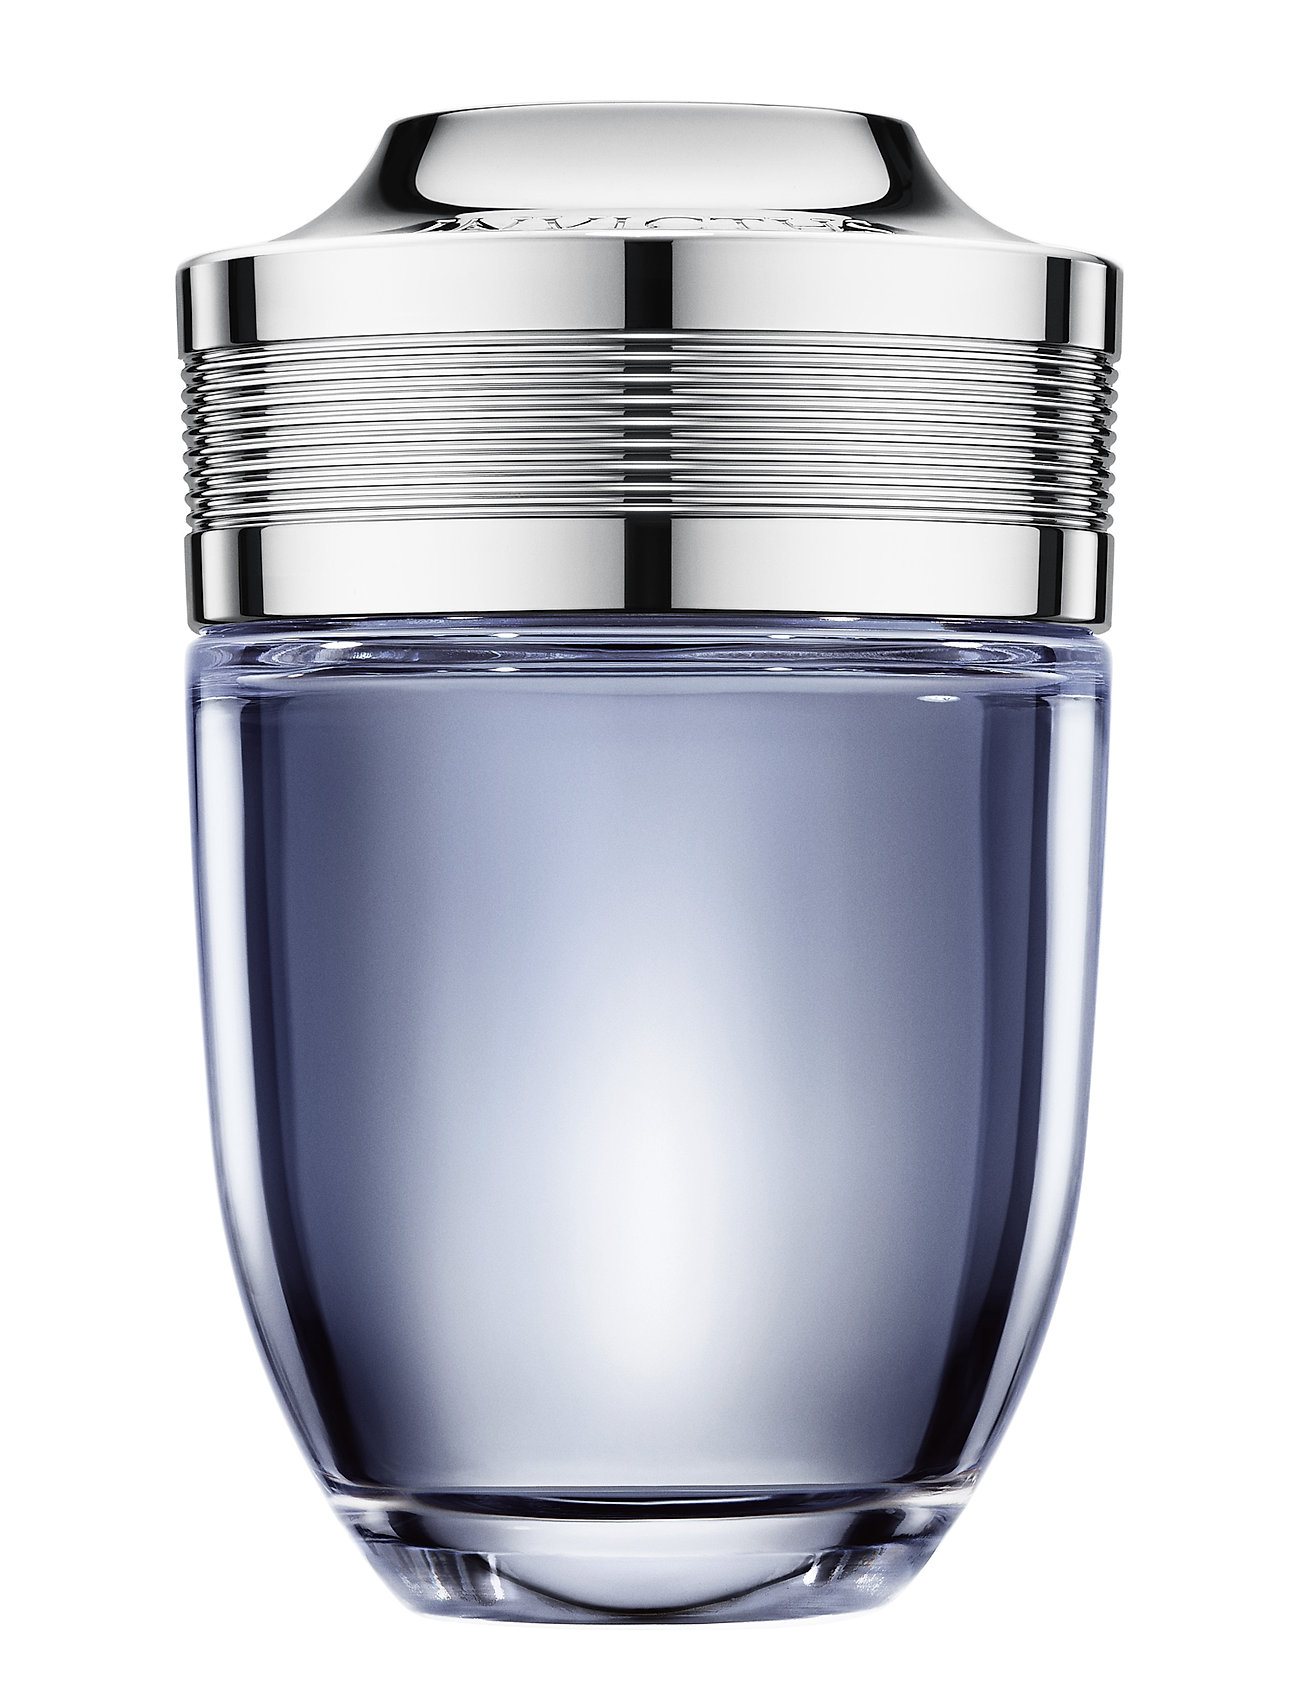 Paco rabanne invictus after shave l fra paco rabanne fra boozt.com dk